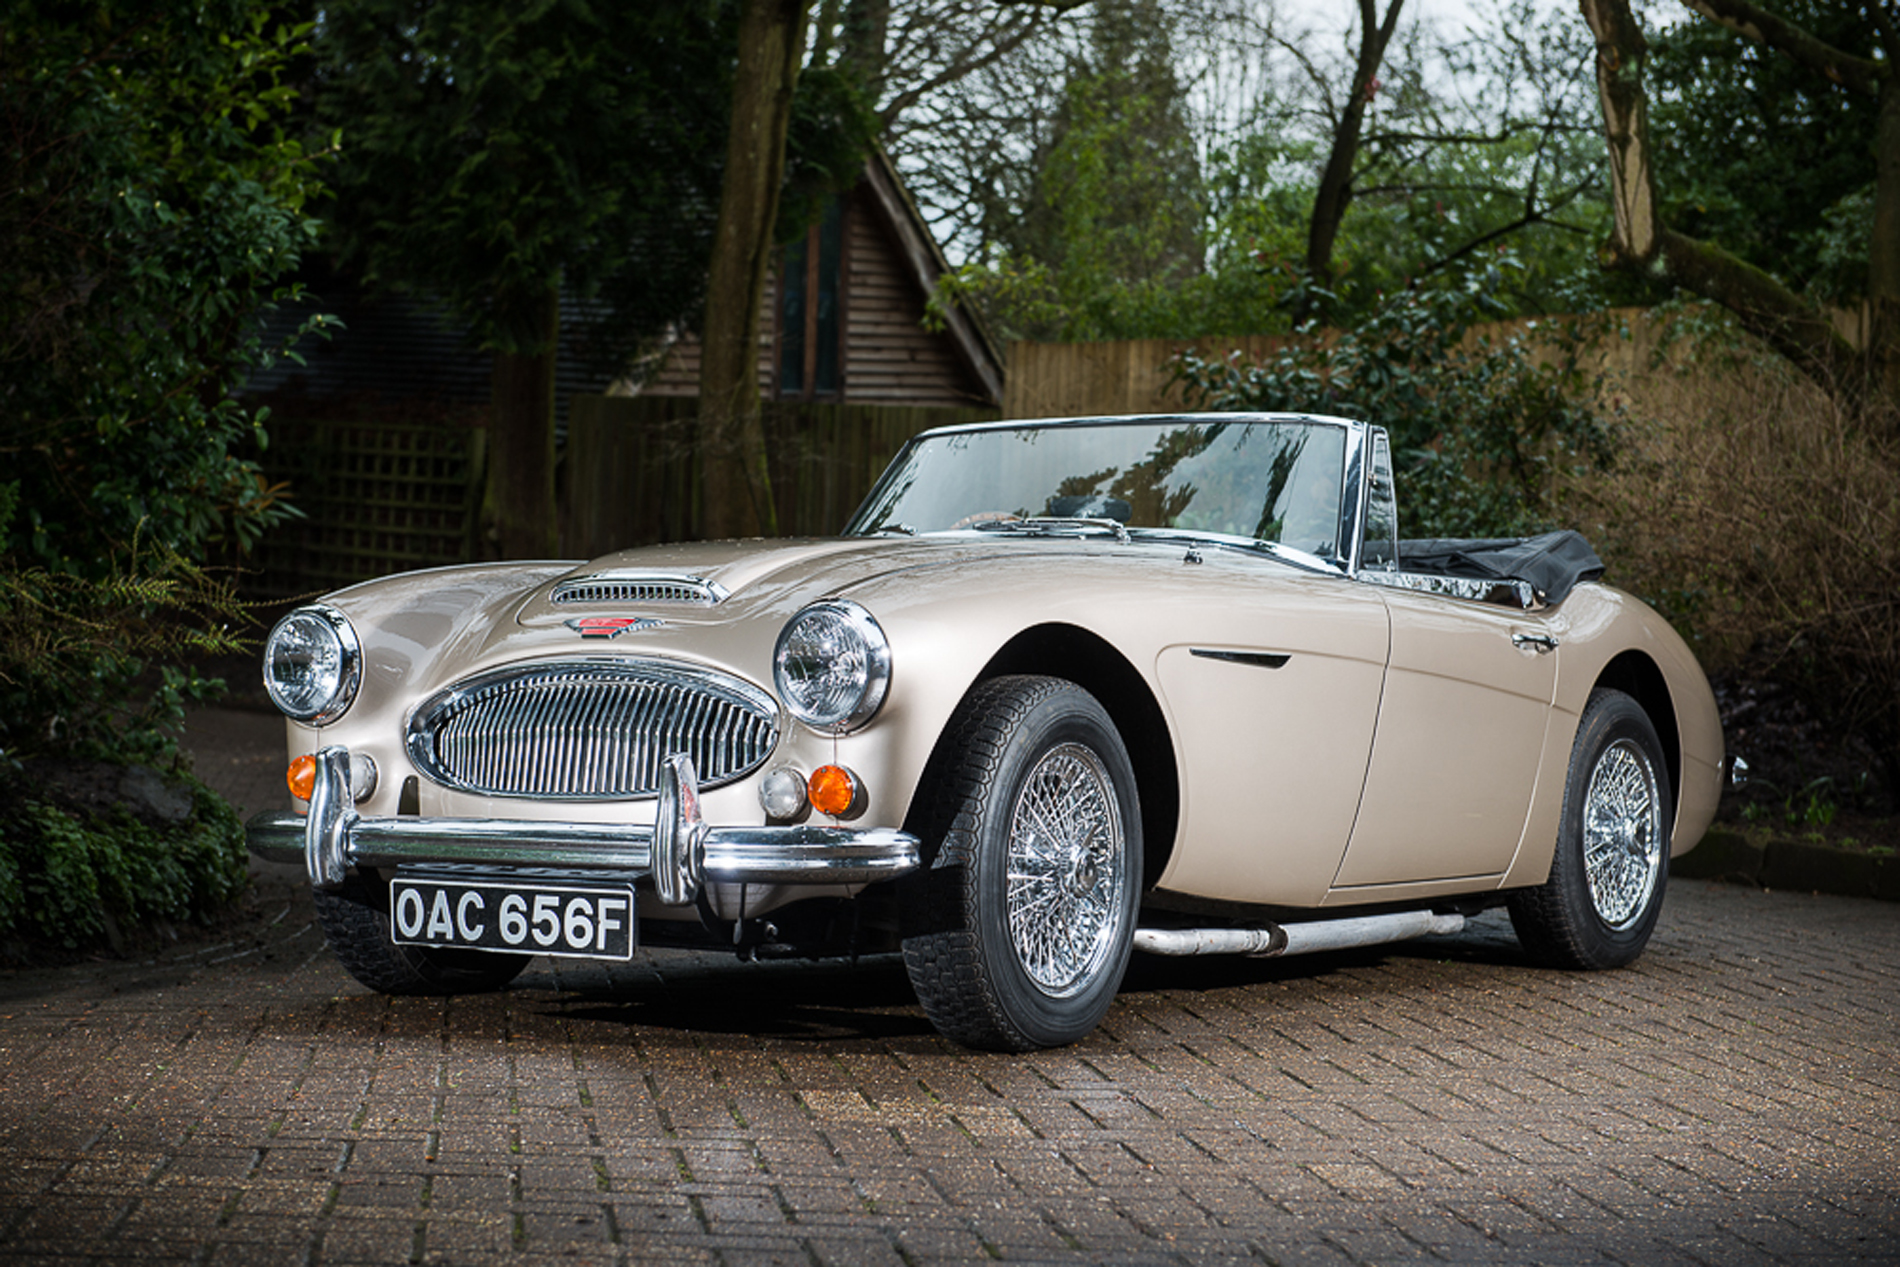 Last Big Healey Ever Made to be Auctioned - Just British